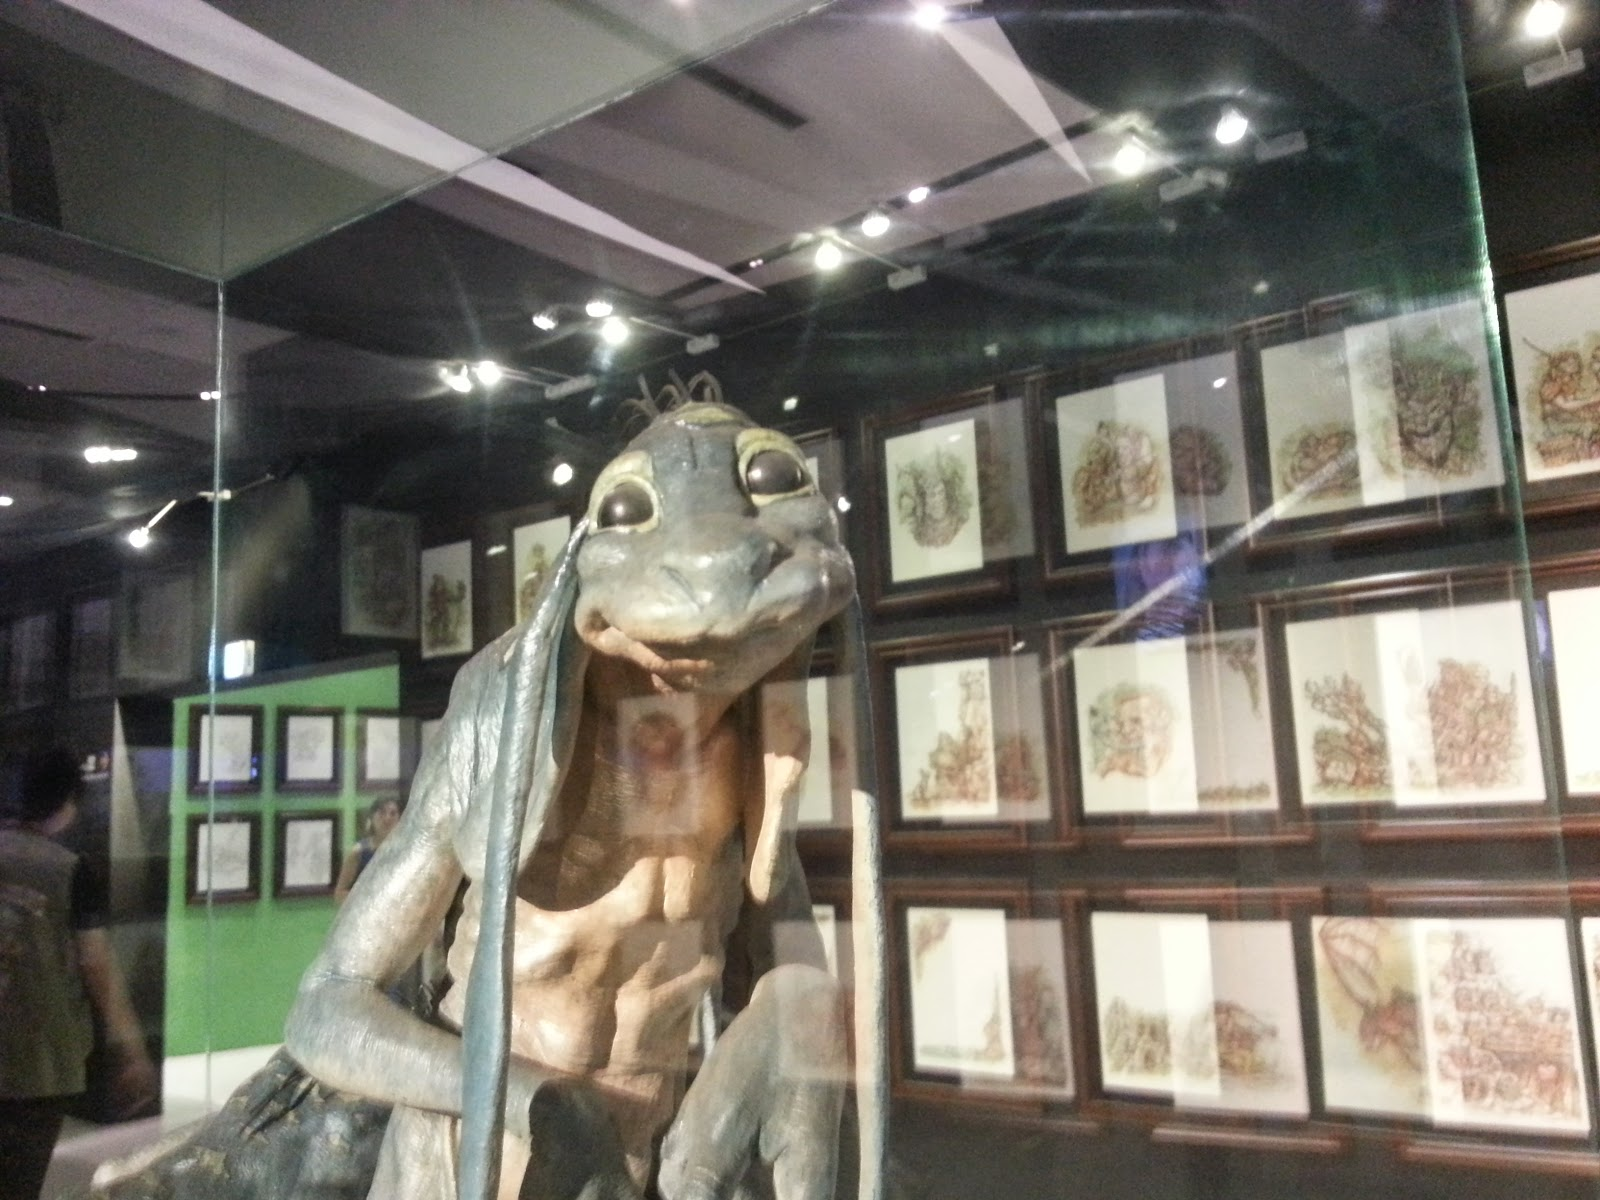 Jar jar binks at Dongdaemun DP